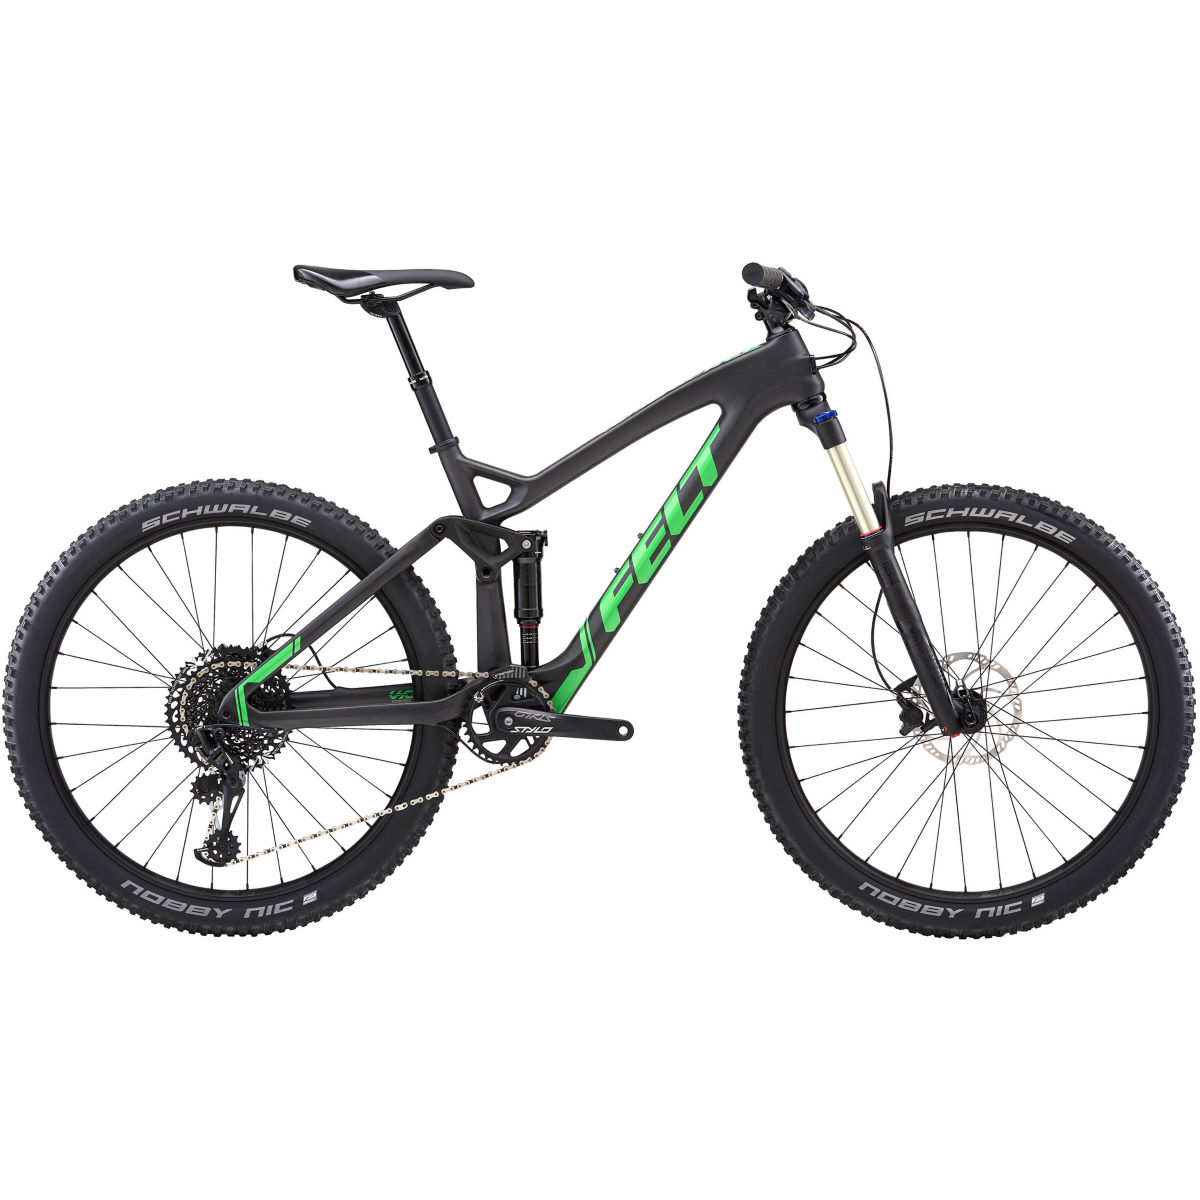 Felt Decree 4 (2018) Full Suspension MTB Bike - Bicicletas de MTB de doble suspensión